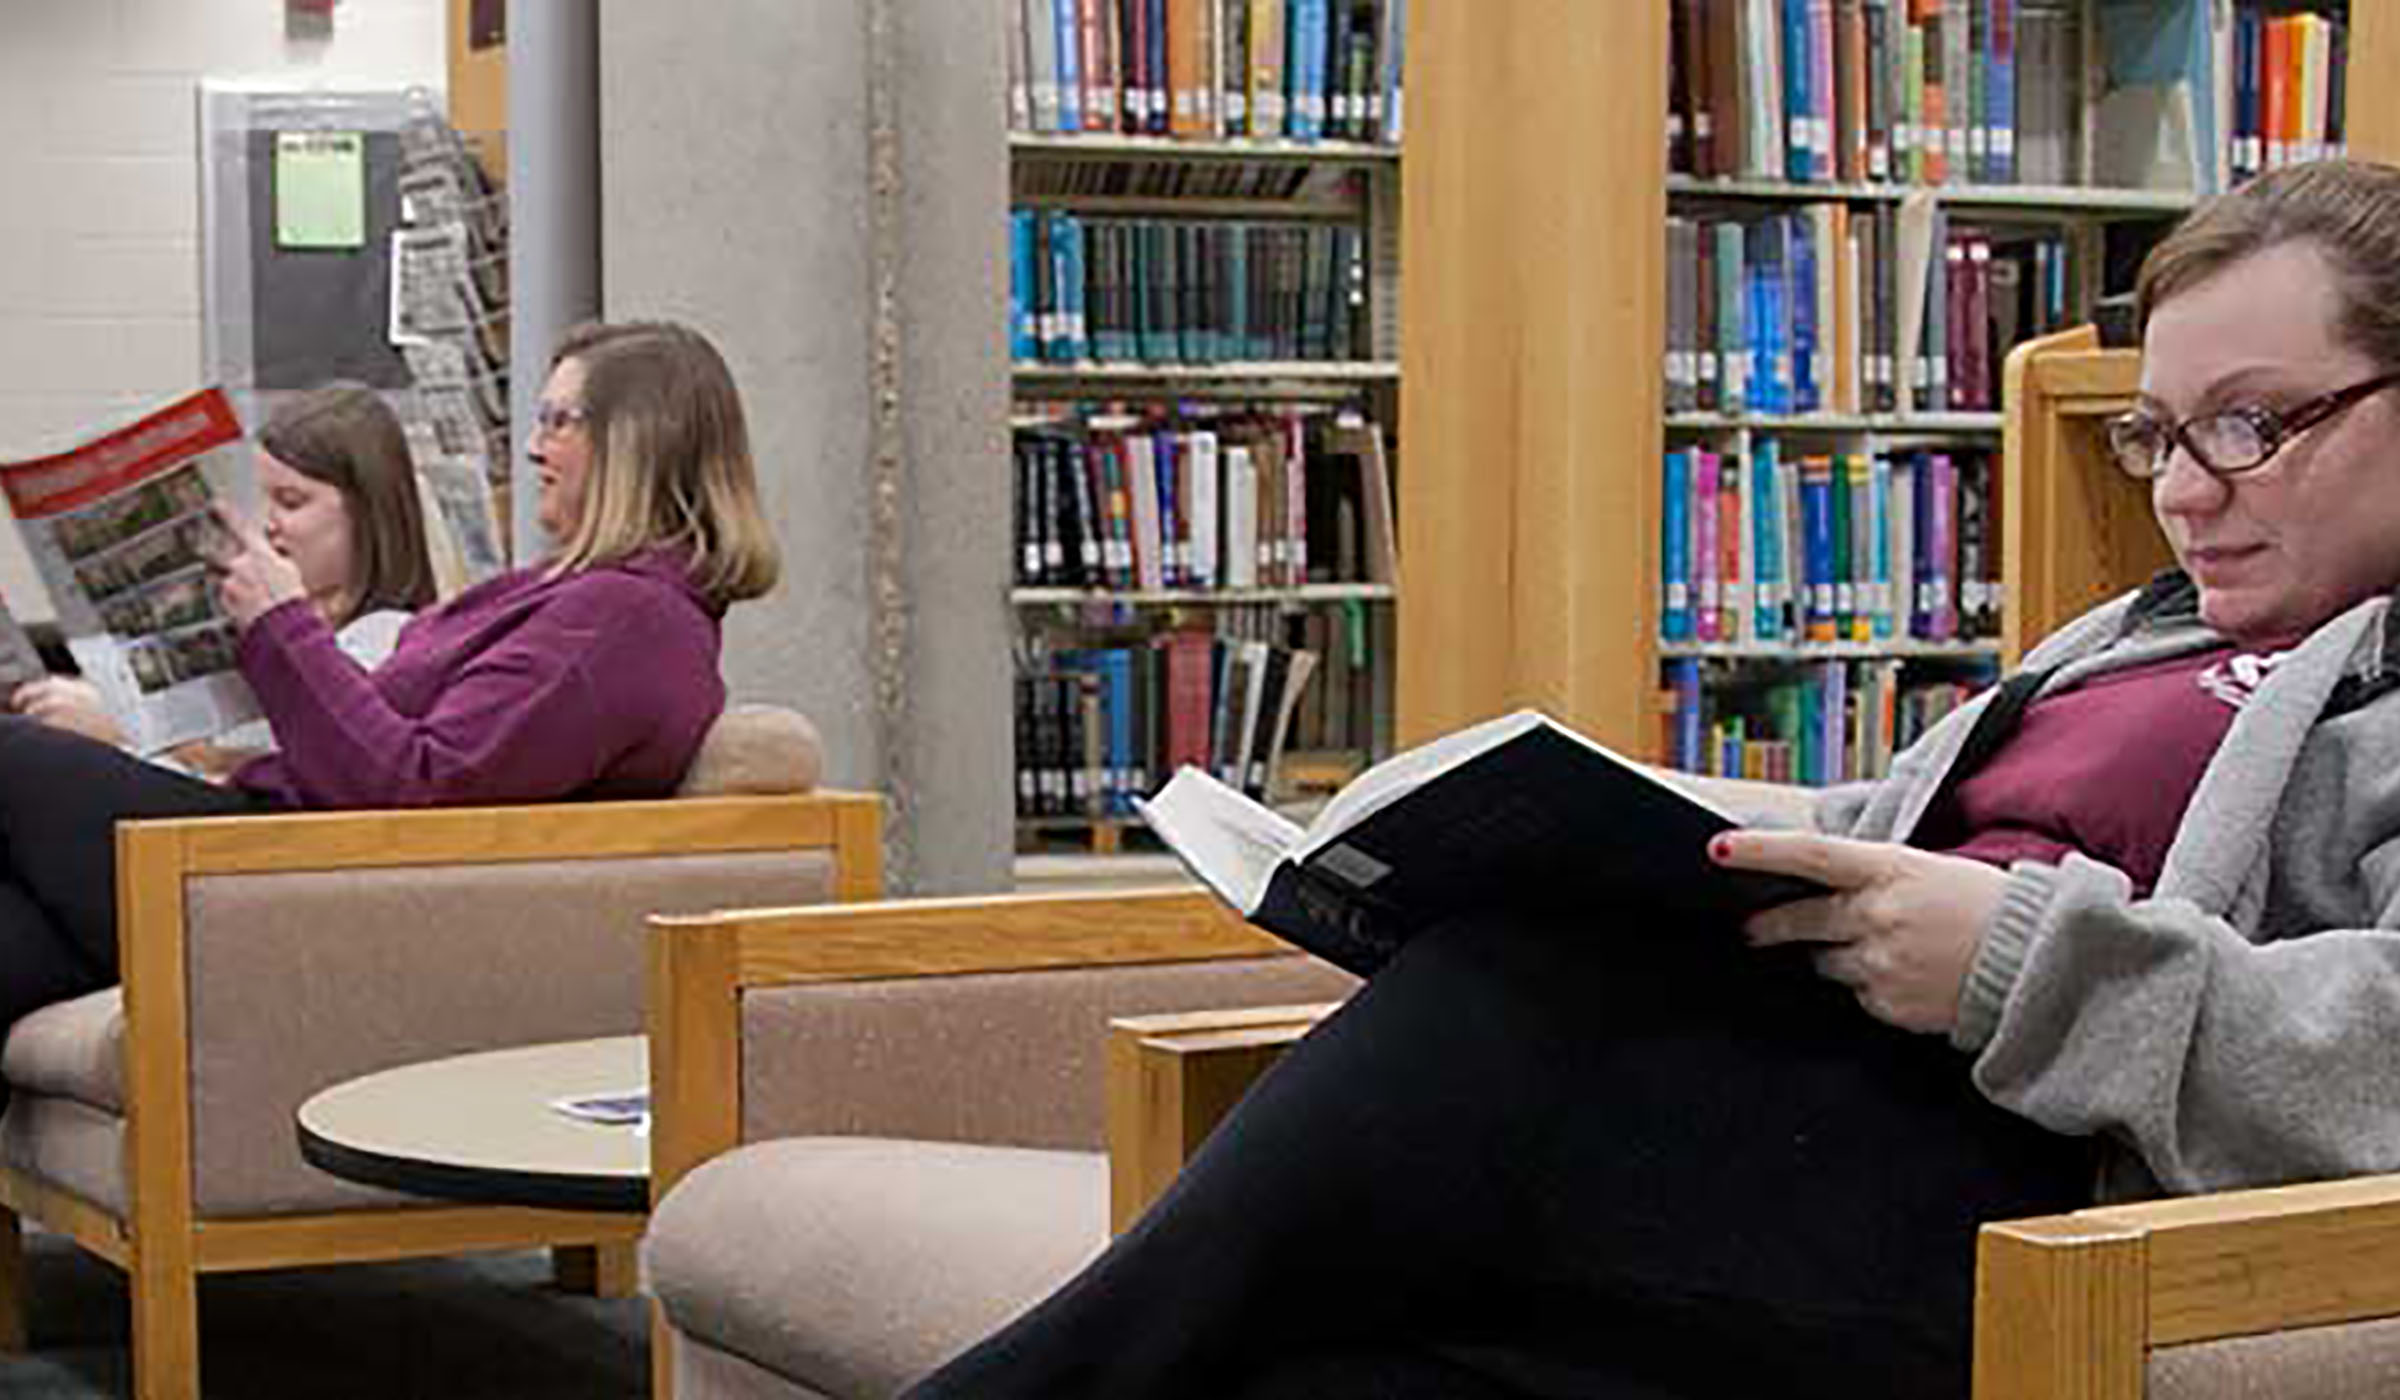 Several students in the reading room of the College of Veterinary Medicine Library.